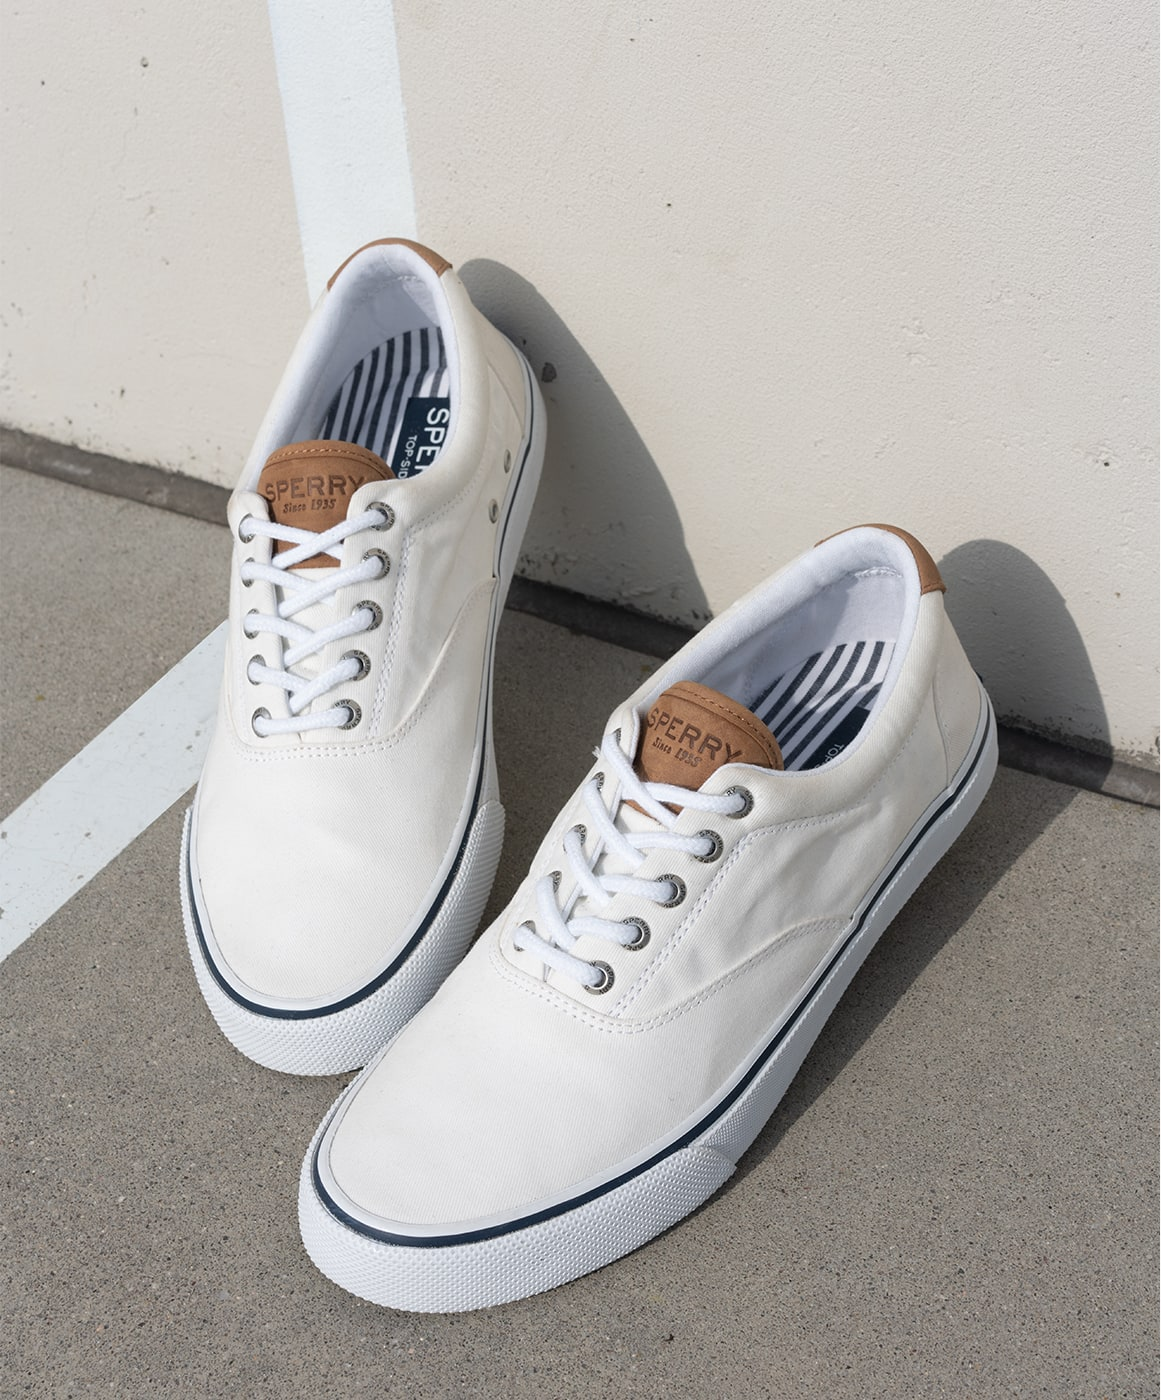 A pair of Sperry sneakers.